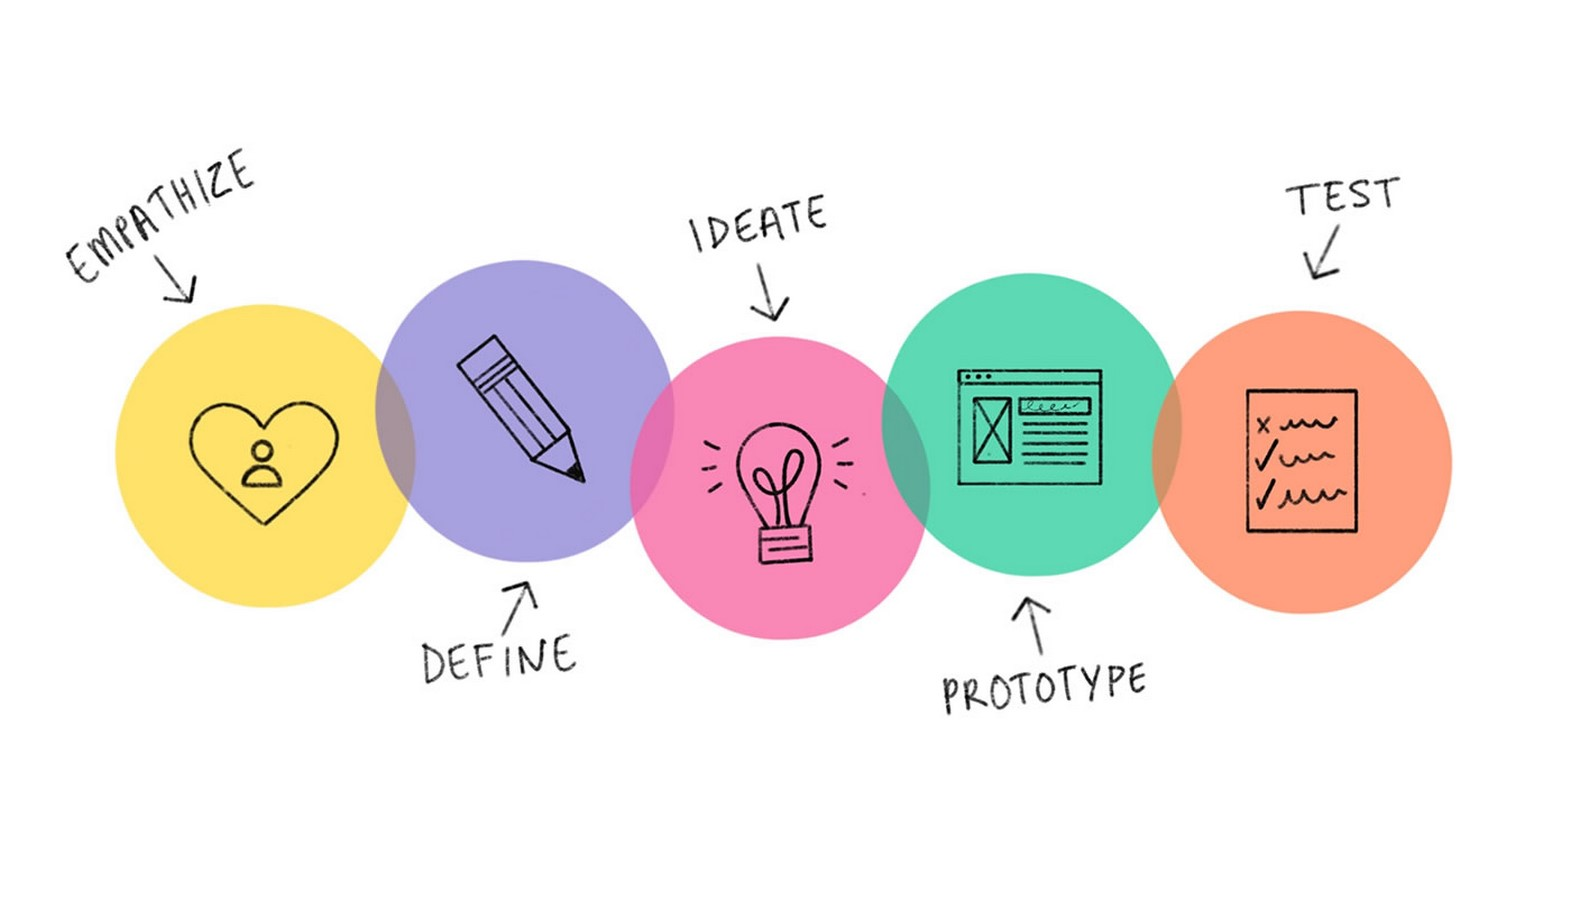 What is Design thinking and why is it important? - Sheet1